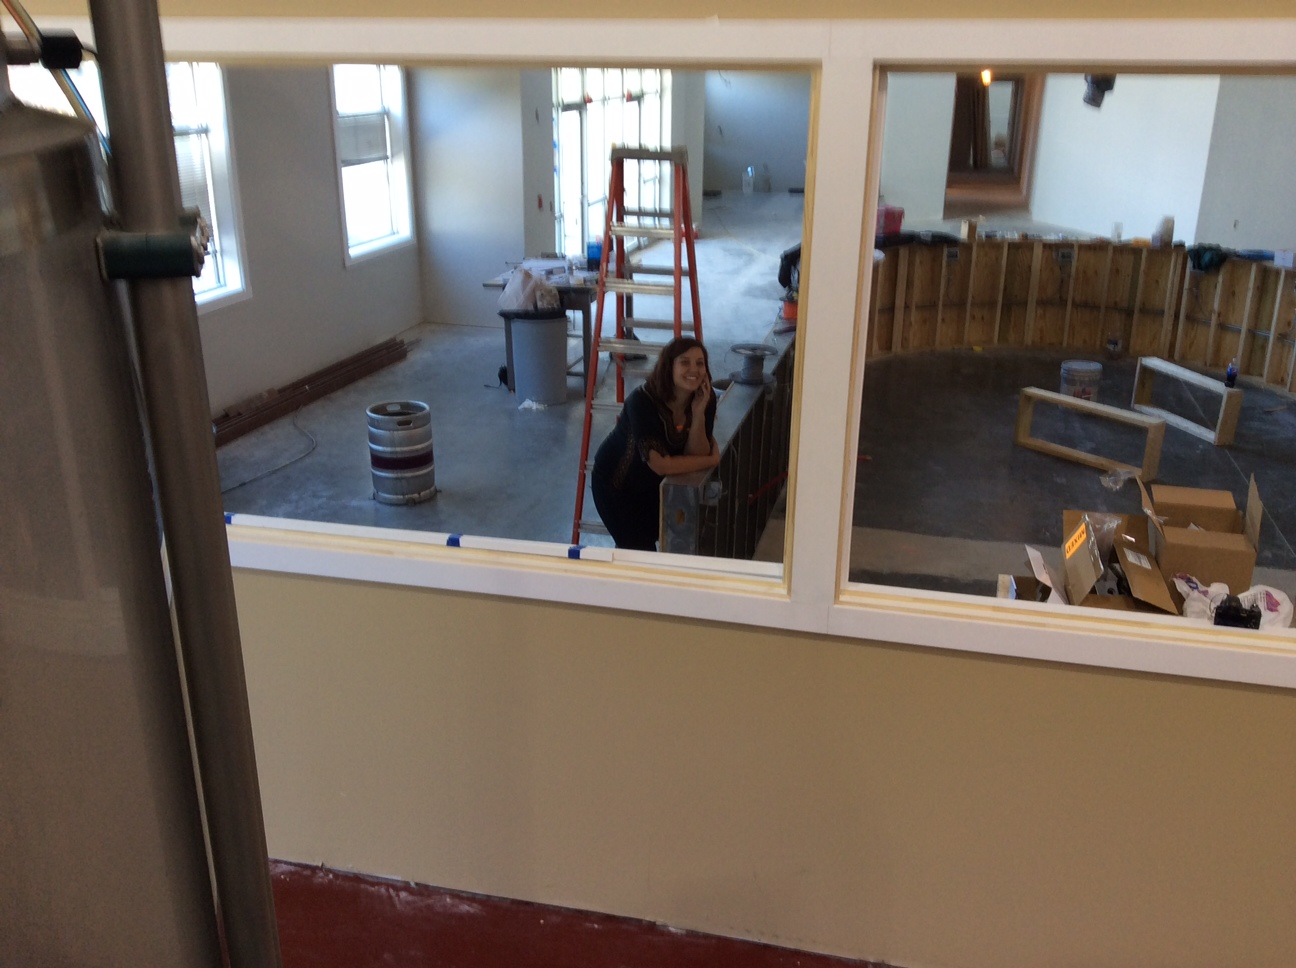 Sam Riley, Operations Director, leaning on the tap room bar. Open to the public soon!